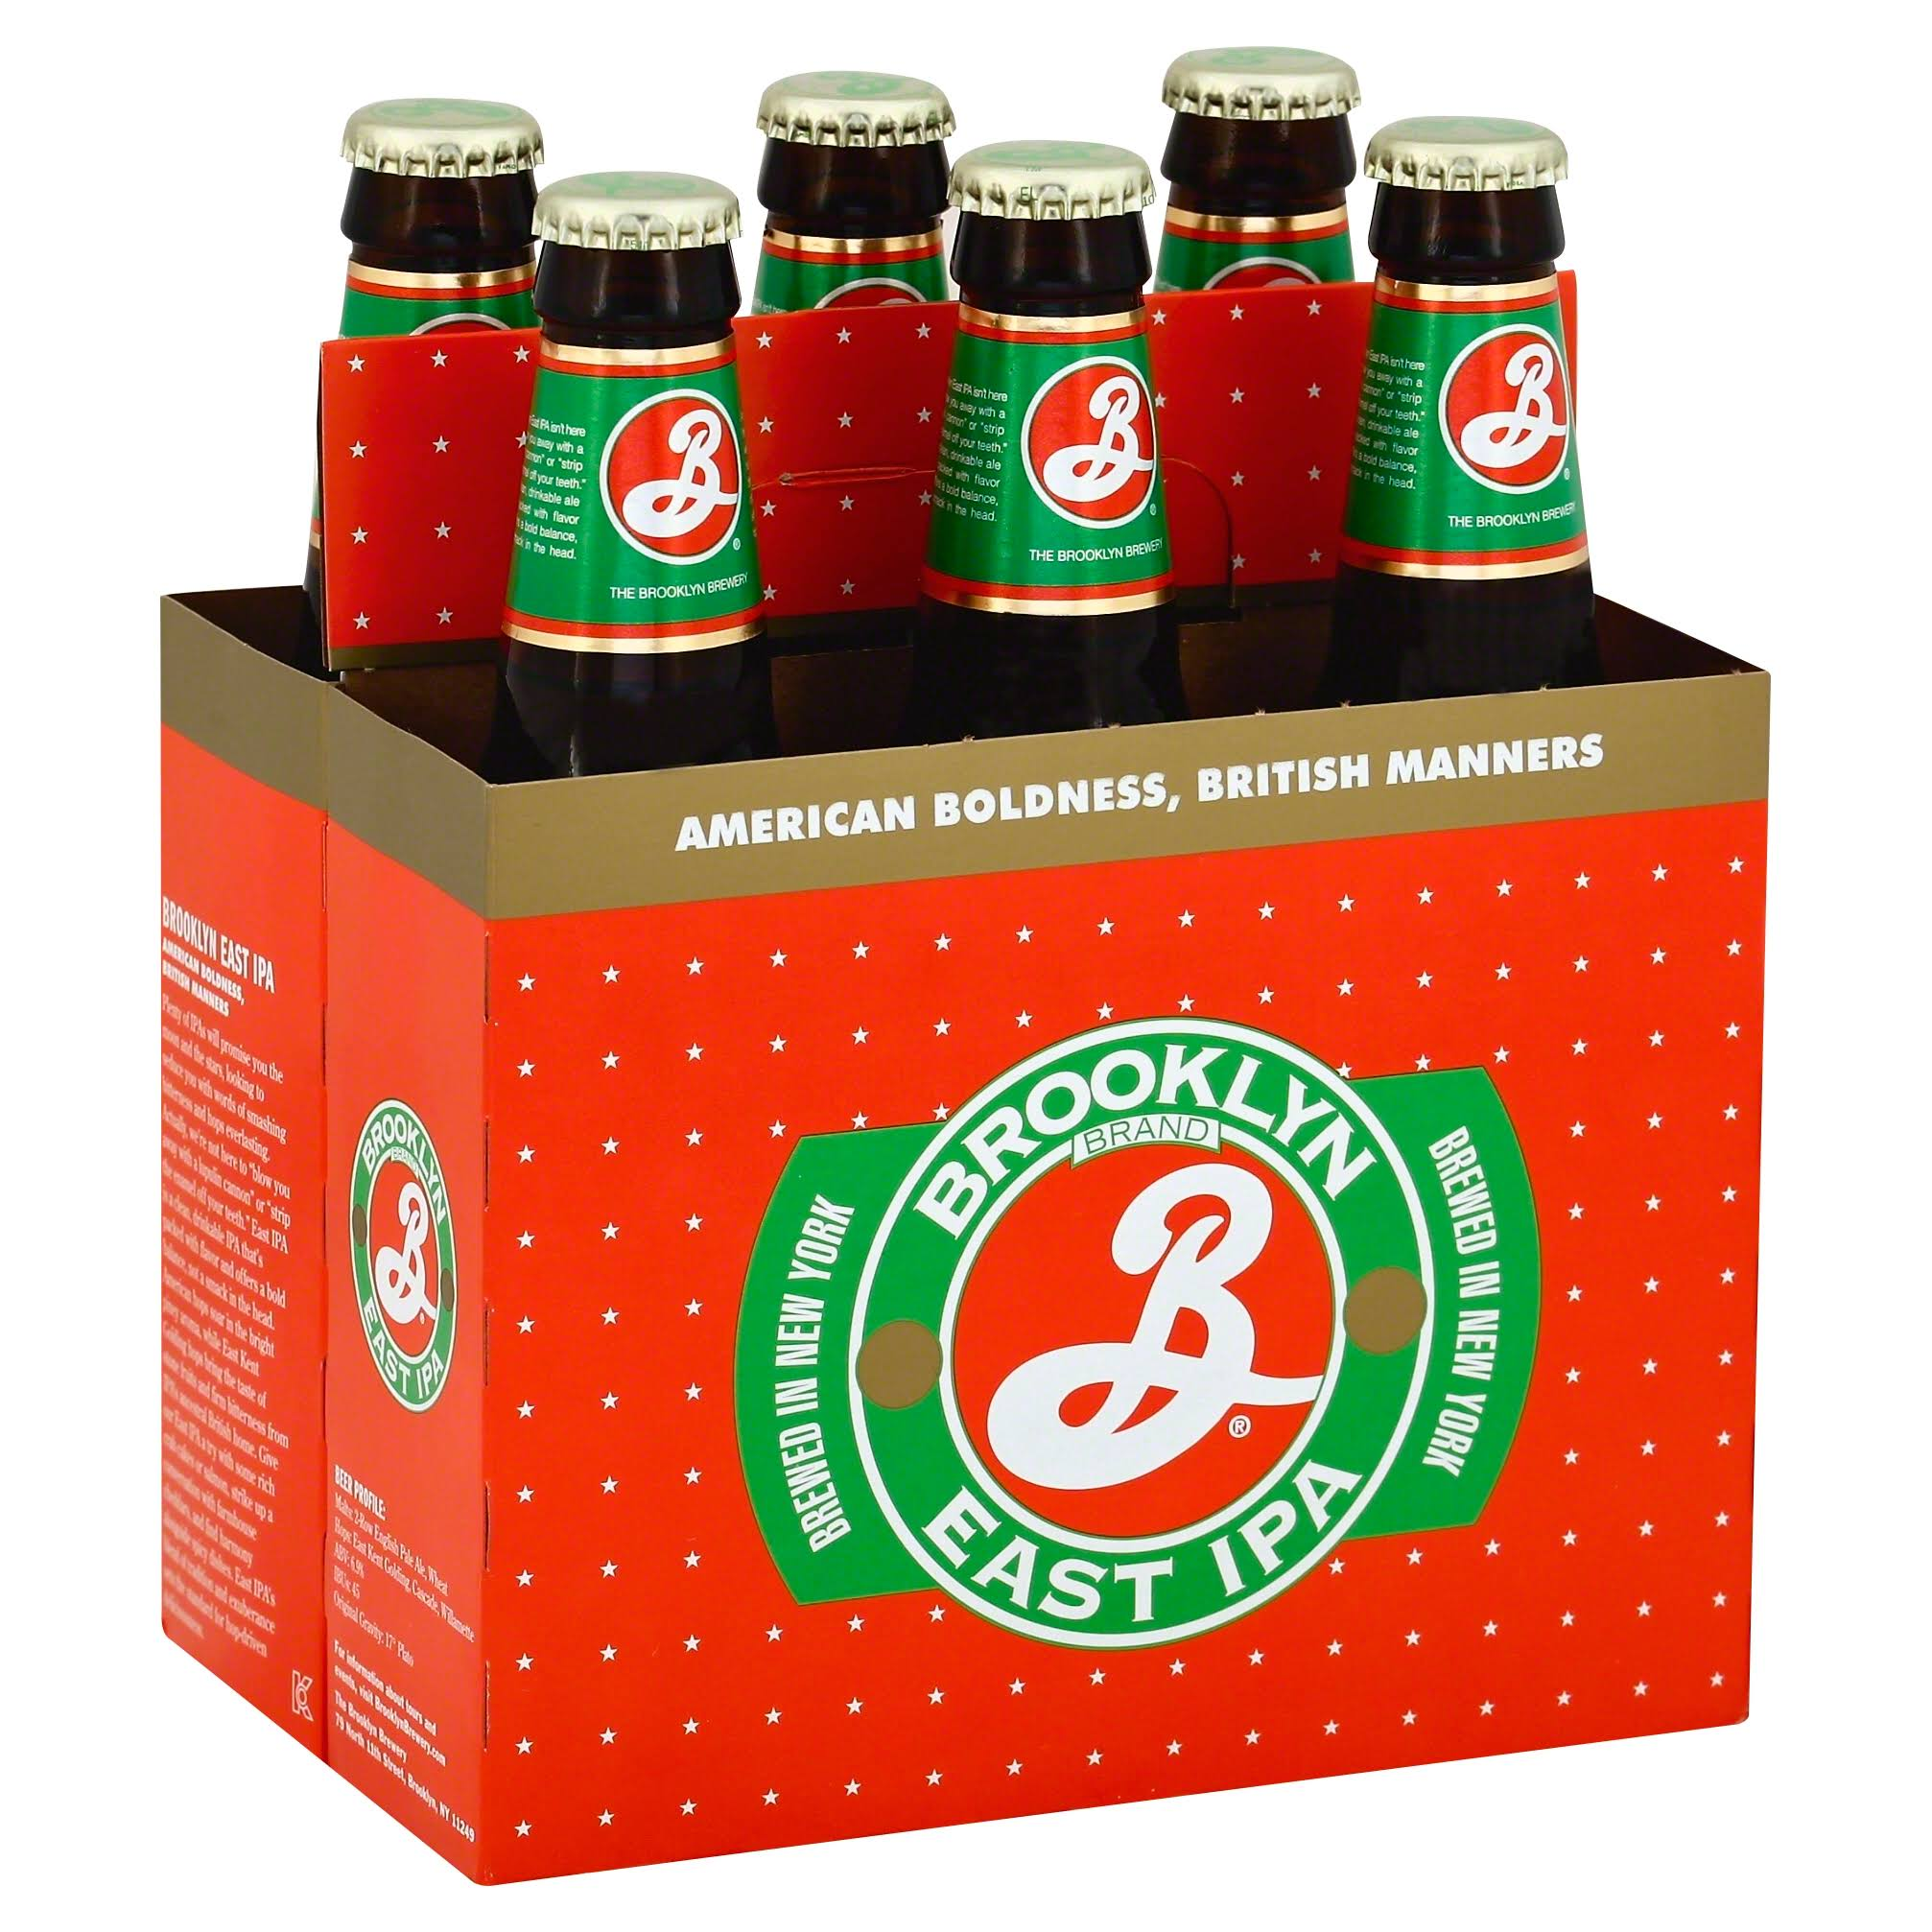 Brooklyn Brewery East India Pale Ale